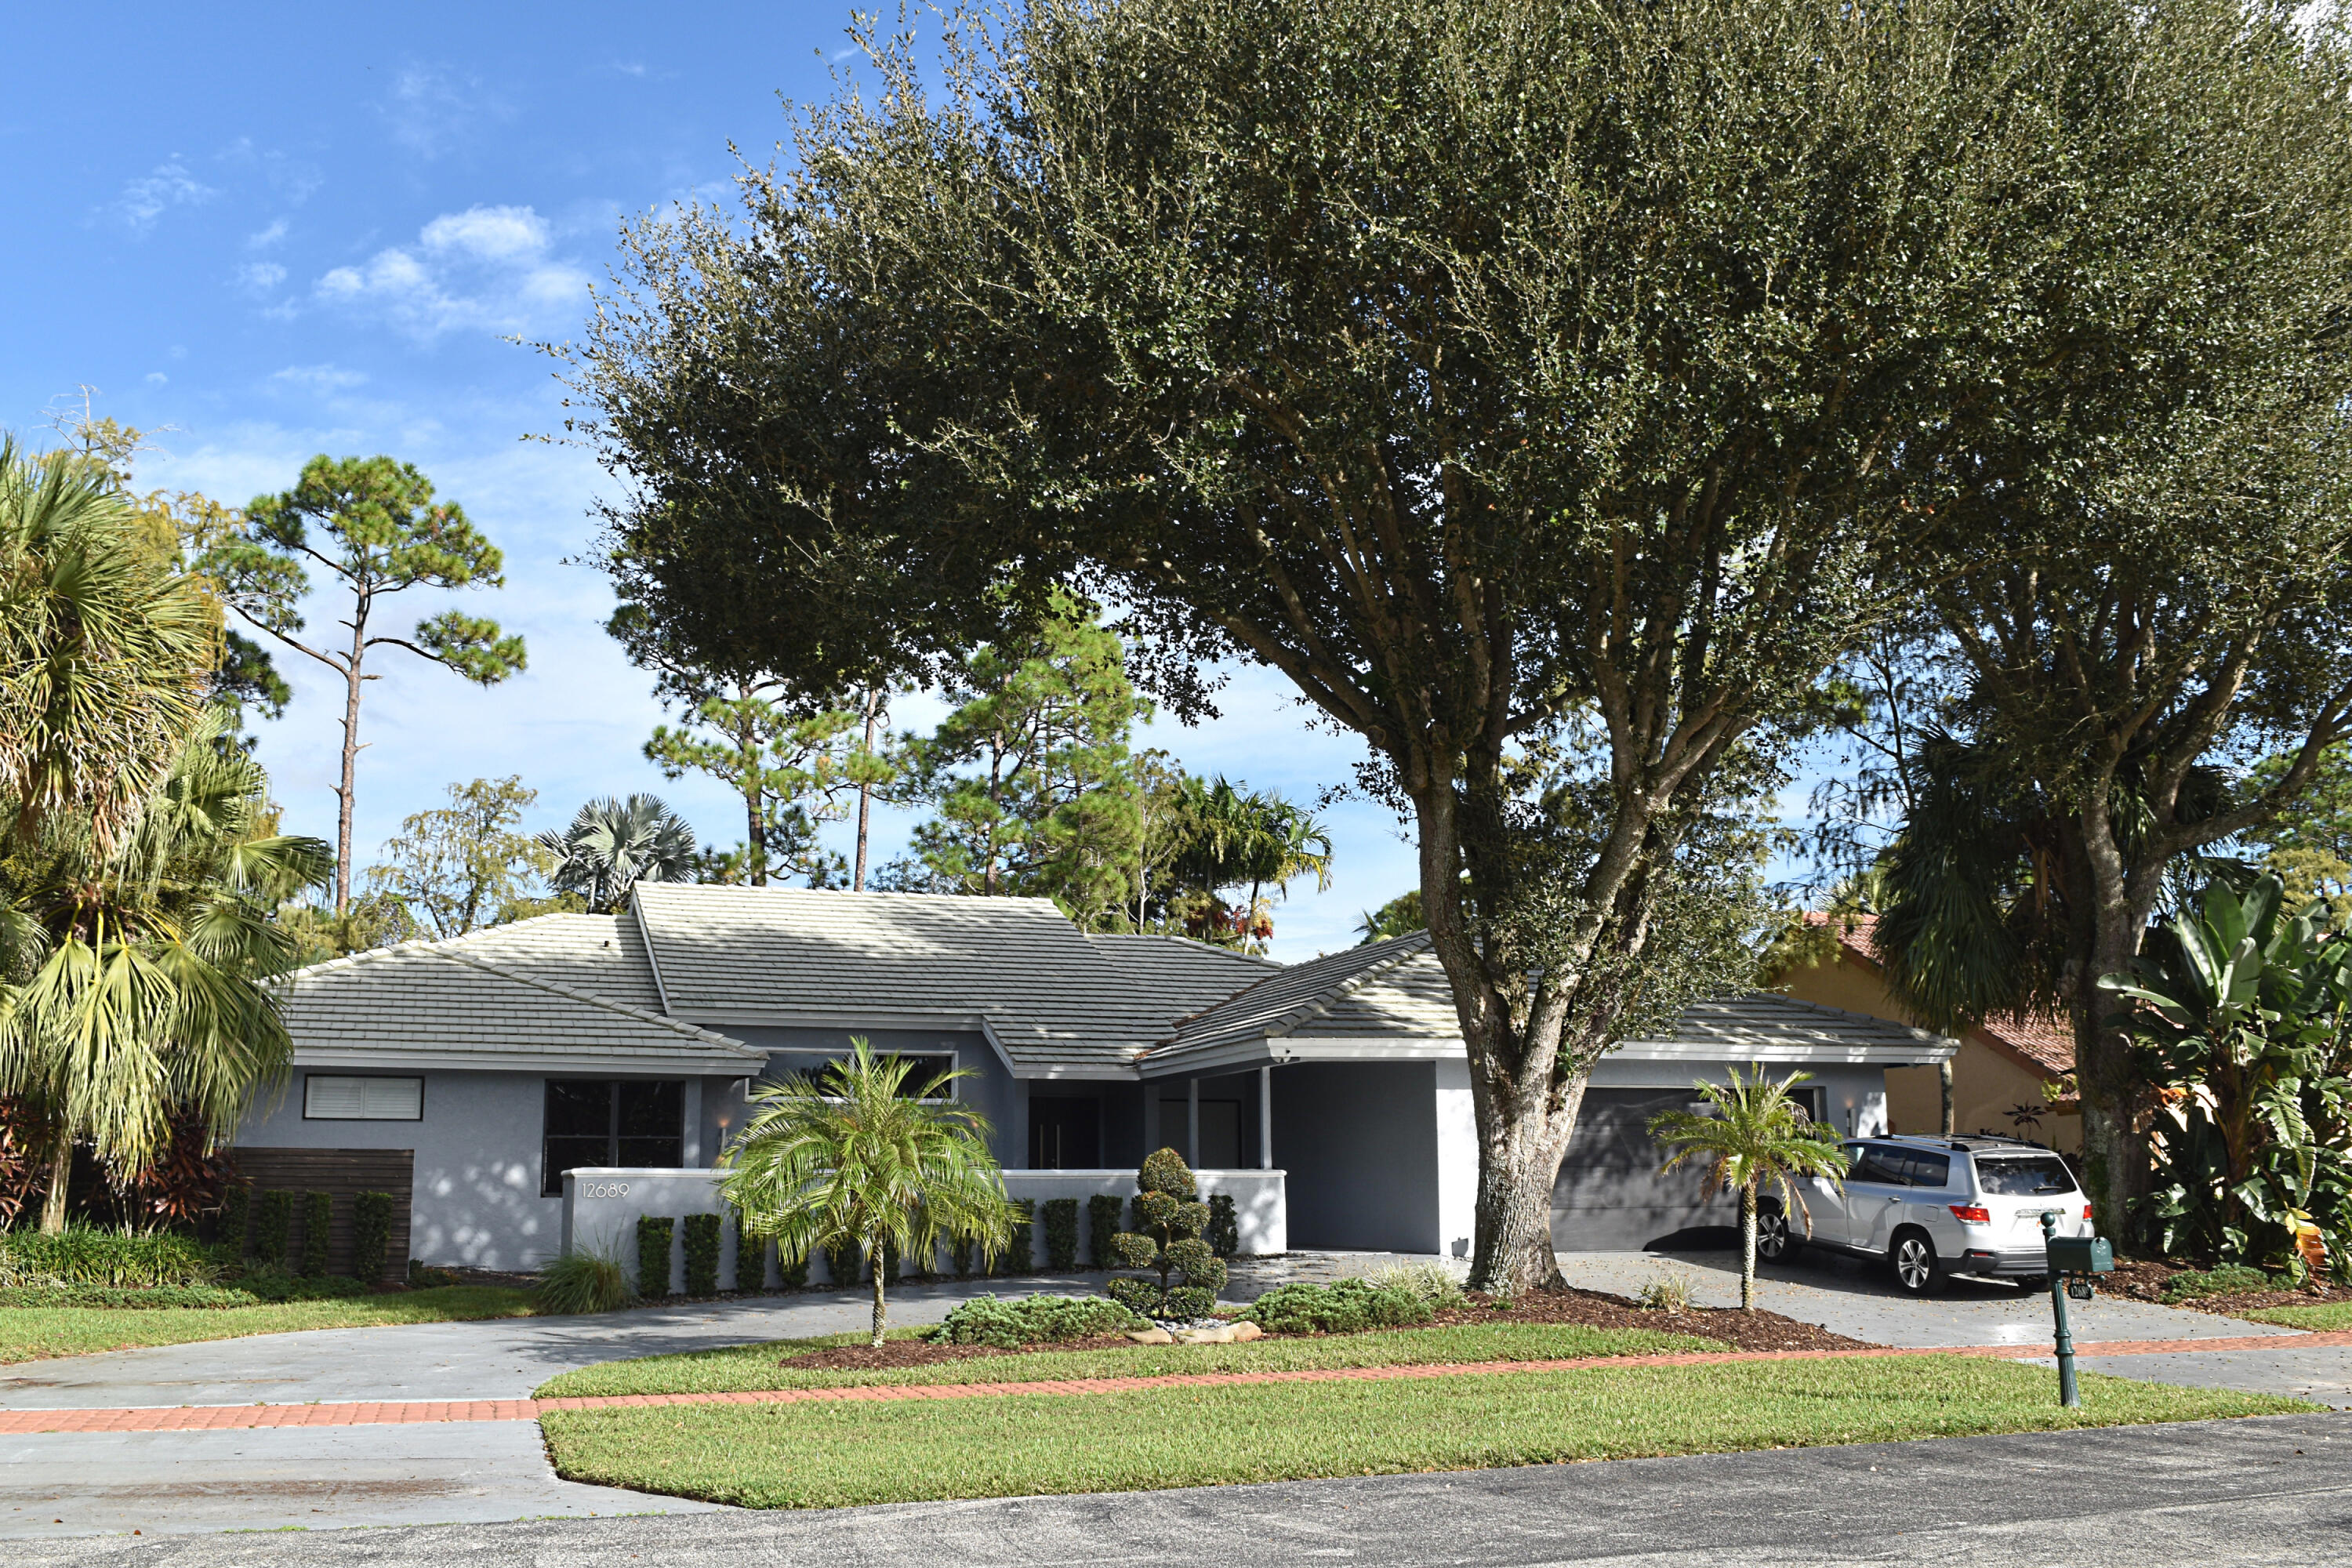 Home for sale in The Island Wellington Florida